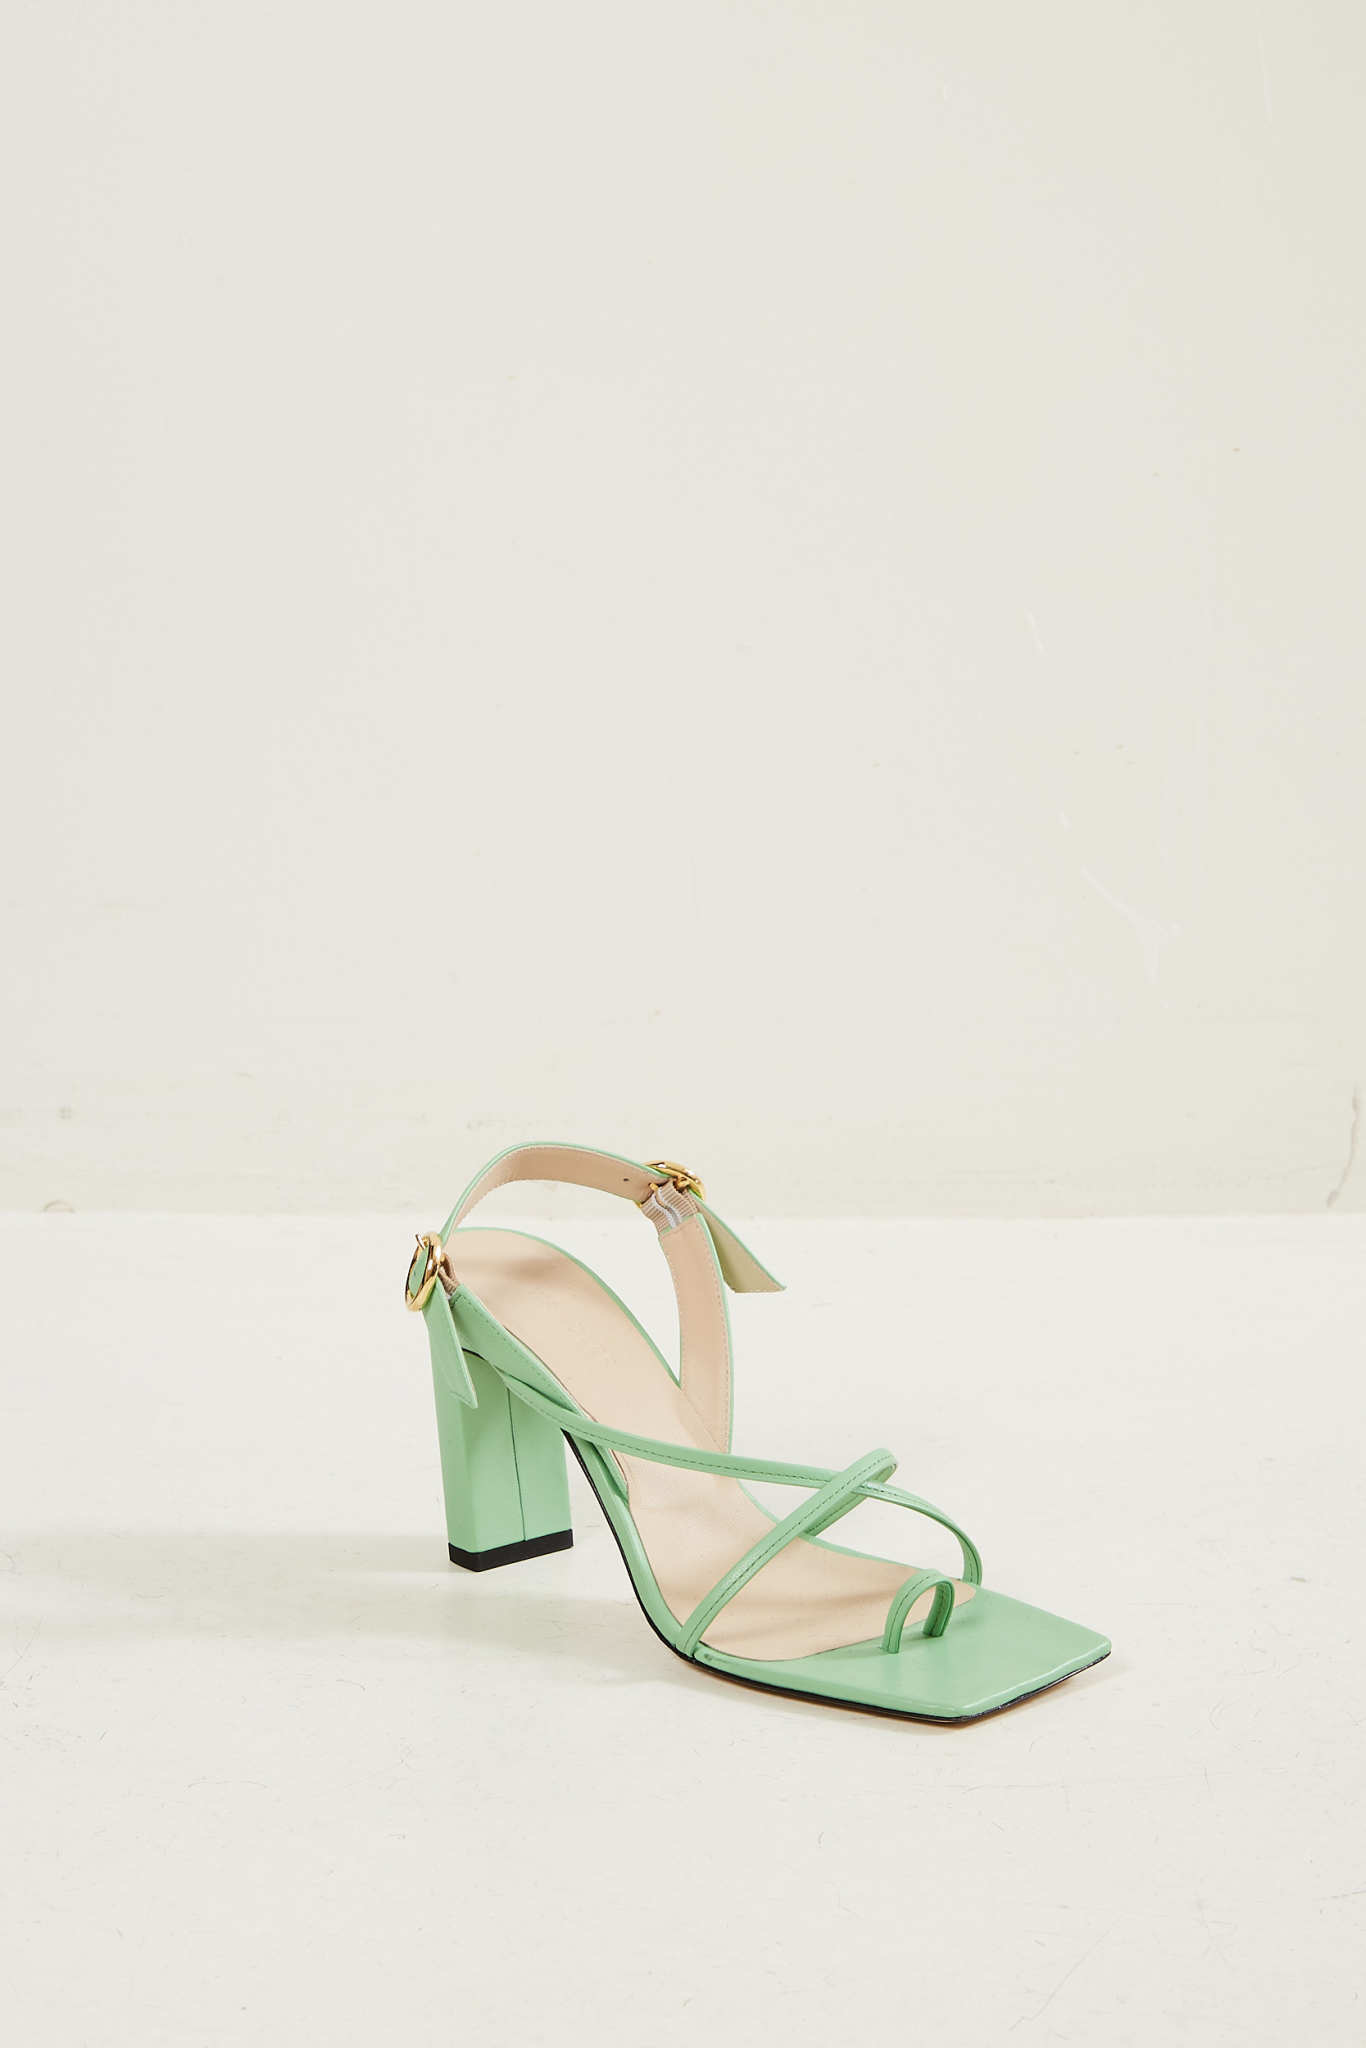 Wandler Elza lambskin leather sandal